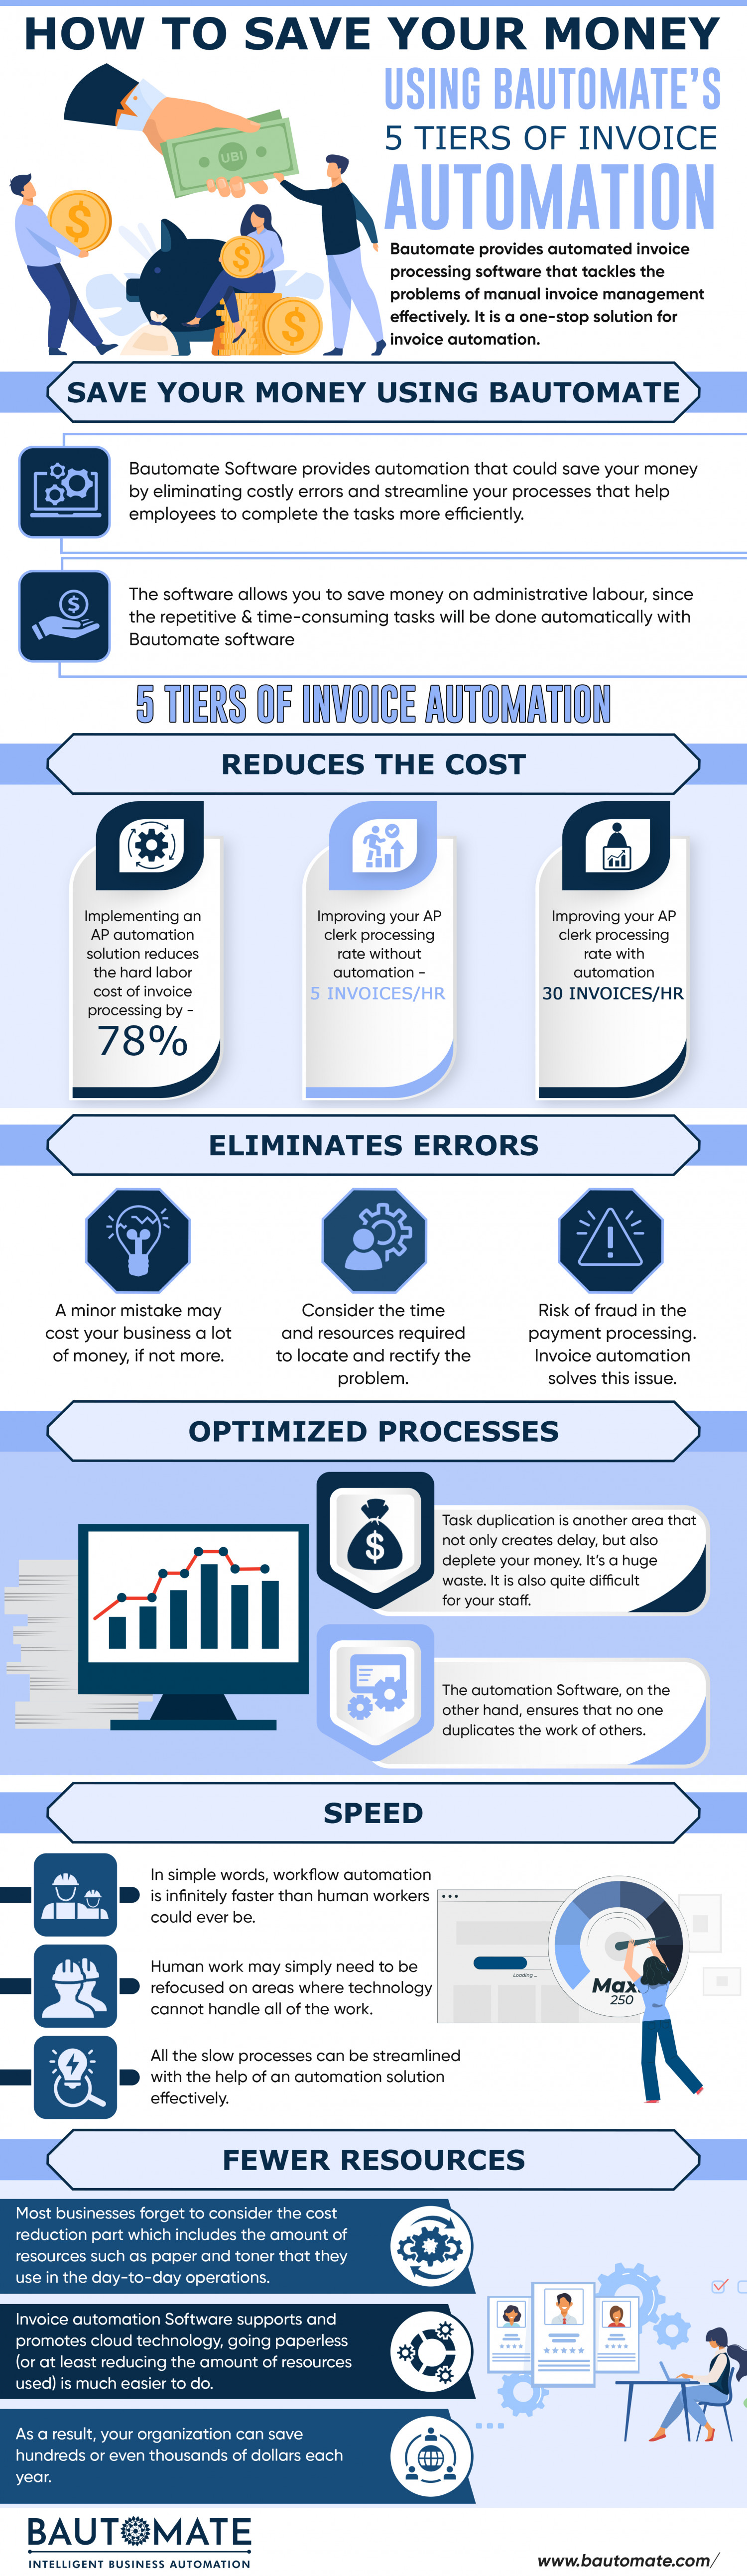 How to save your money using Bautomate's 5 Tiers Of Invoice Automation Infographic